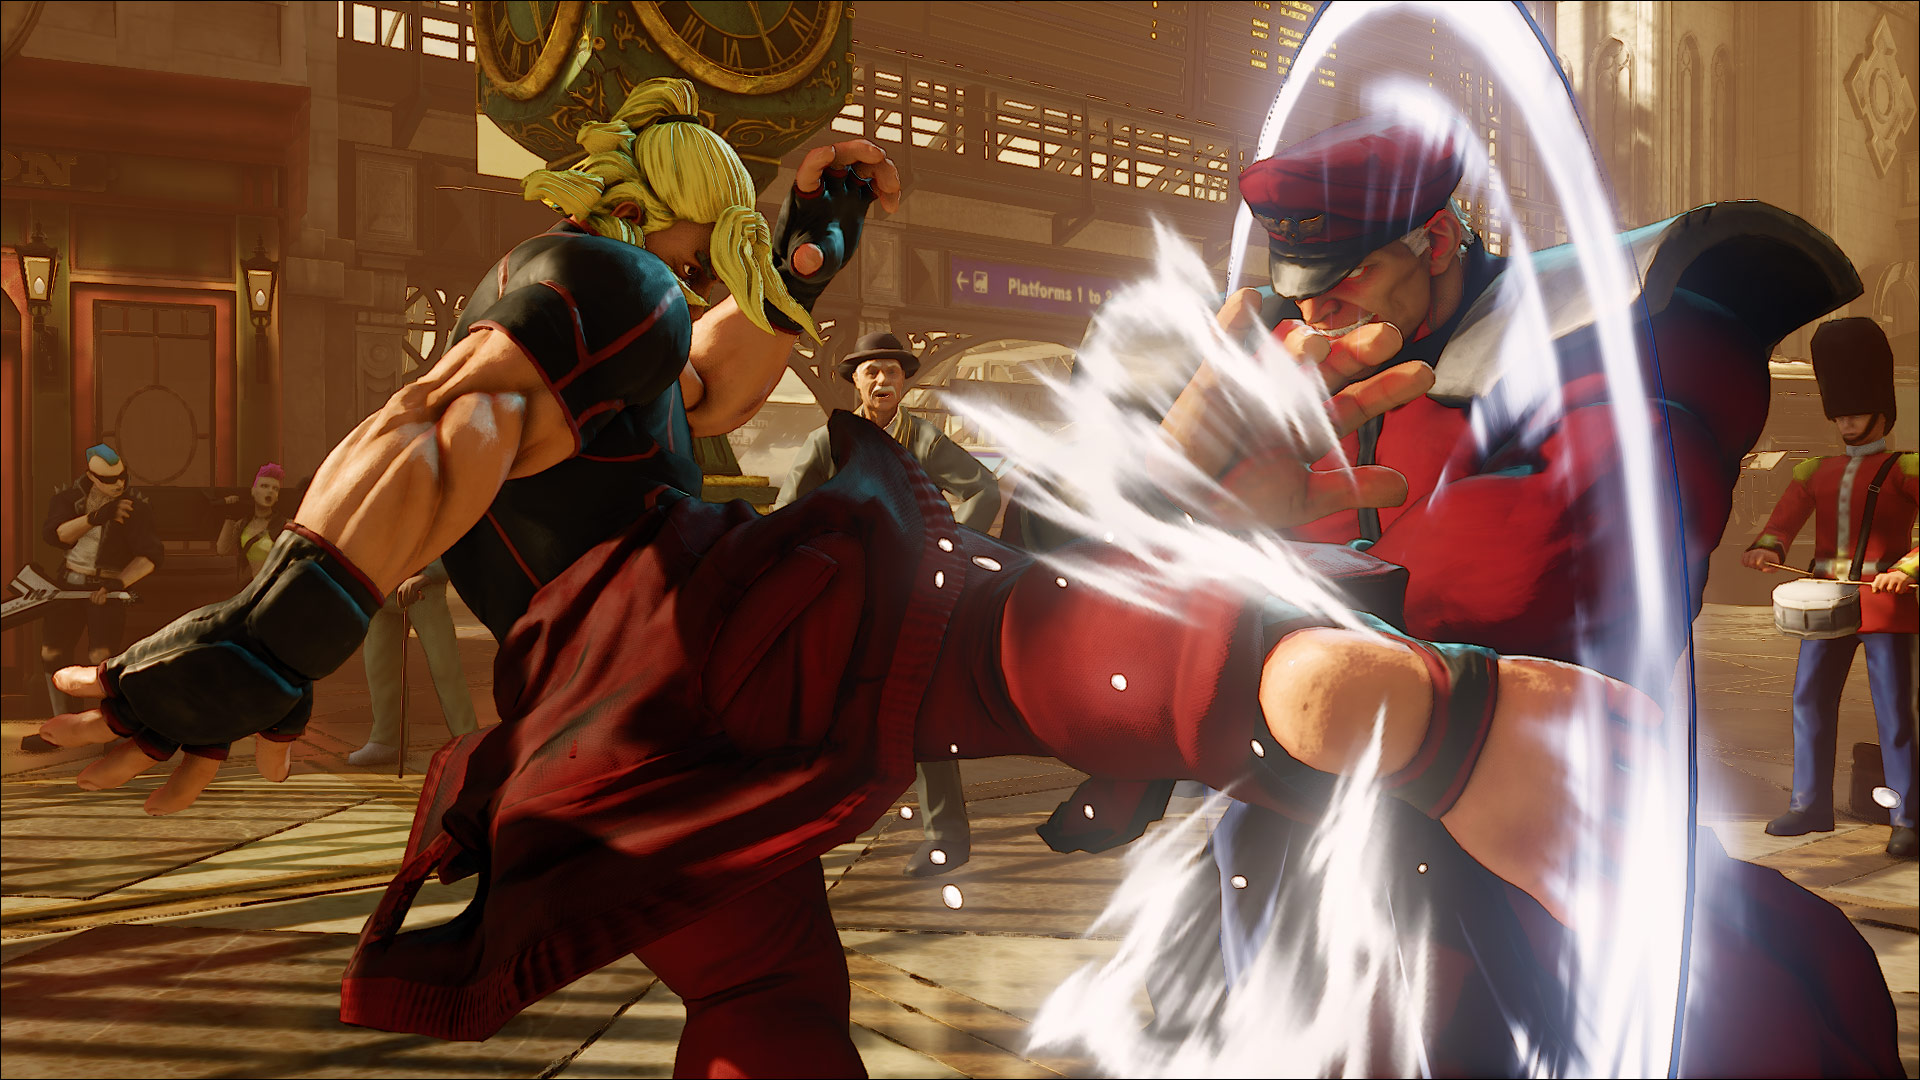 Ken Street Fighter 5 SDCC 2015 reveal 8 out of 13 image gallery